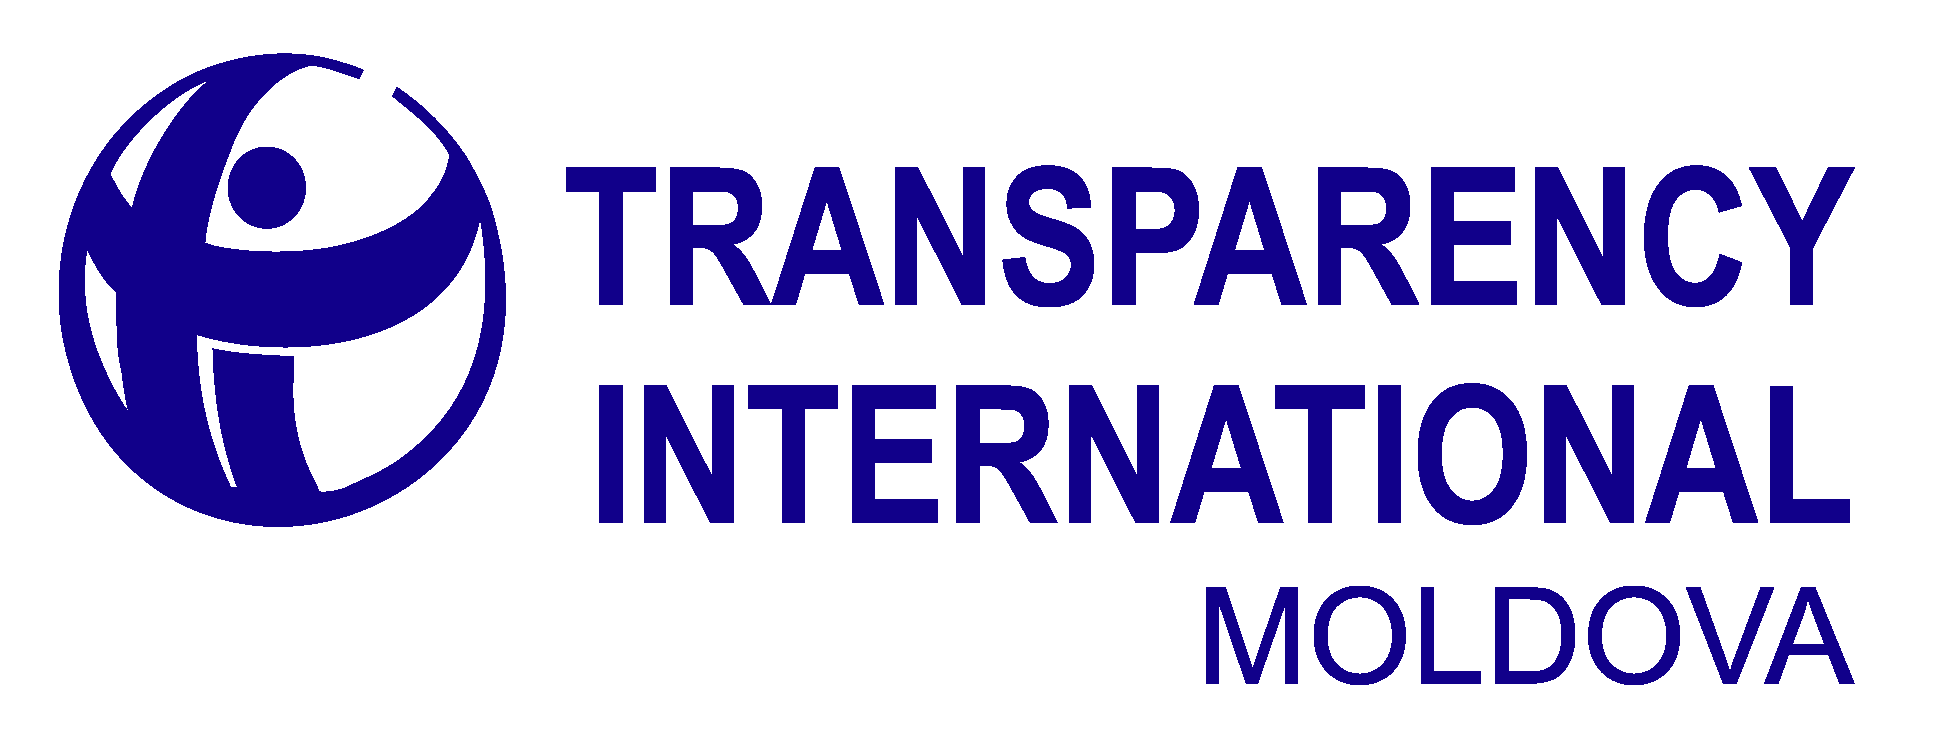 Transparency International Moldova